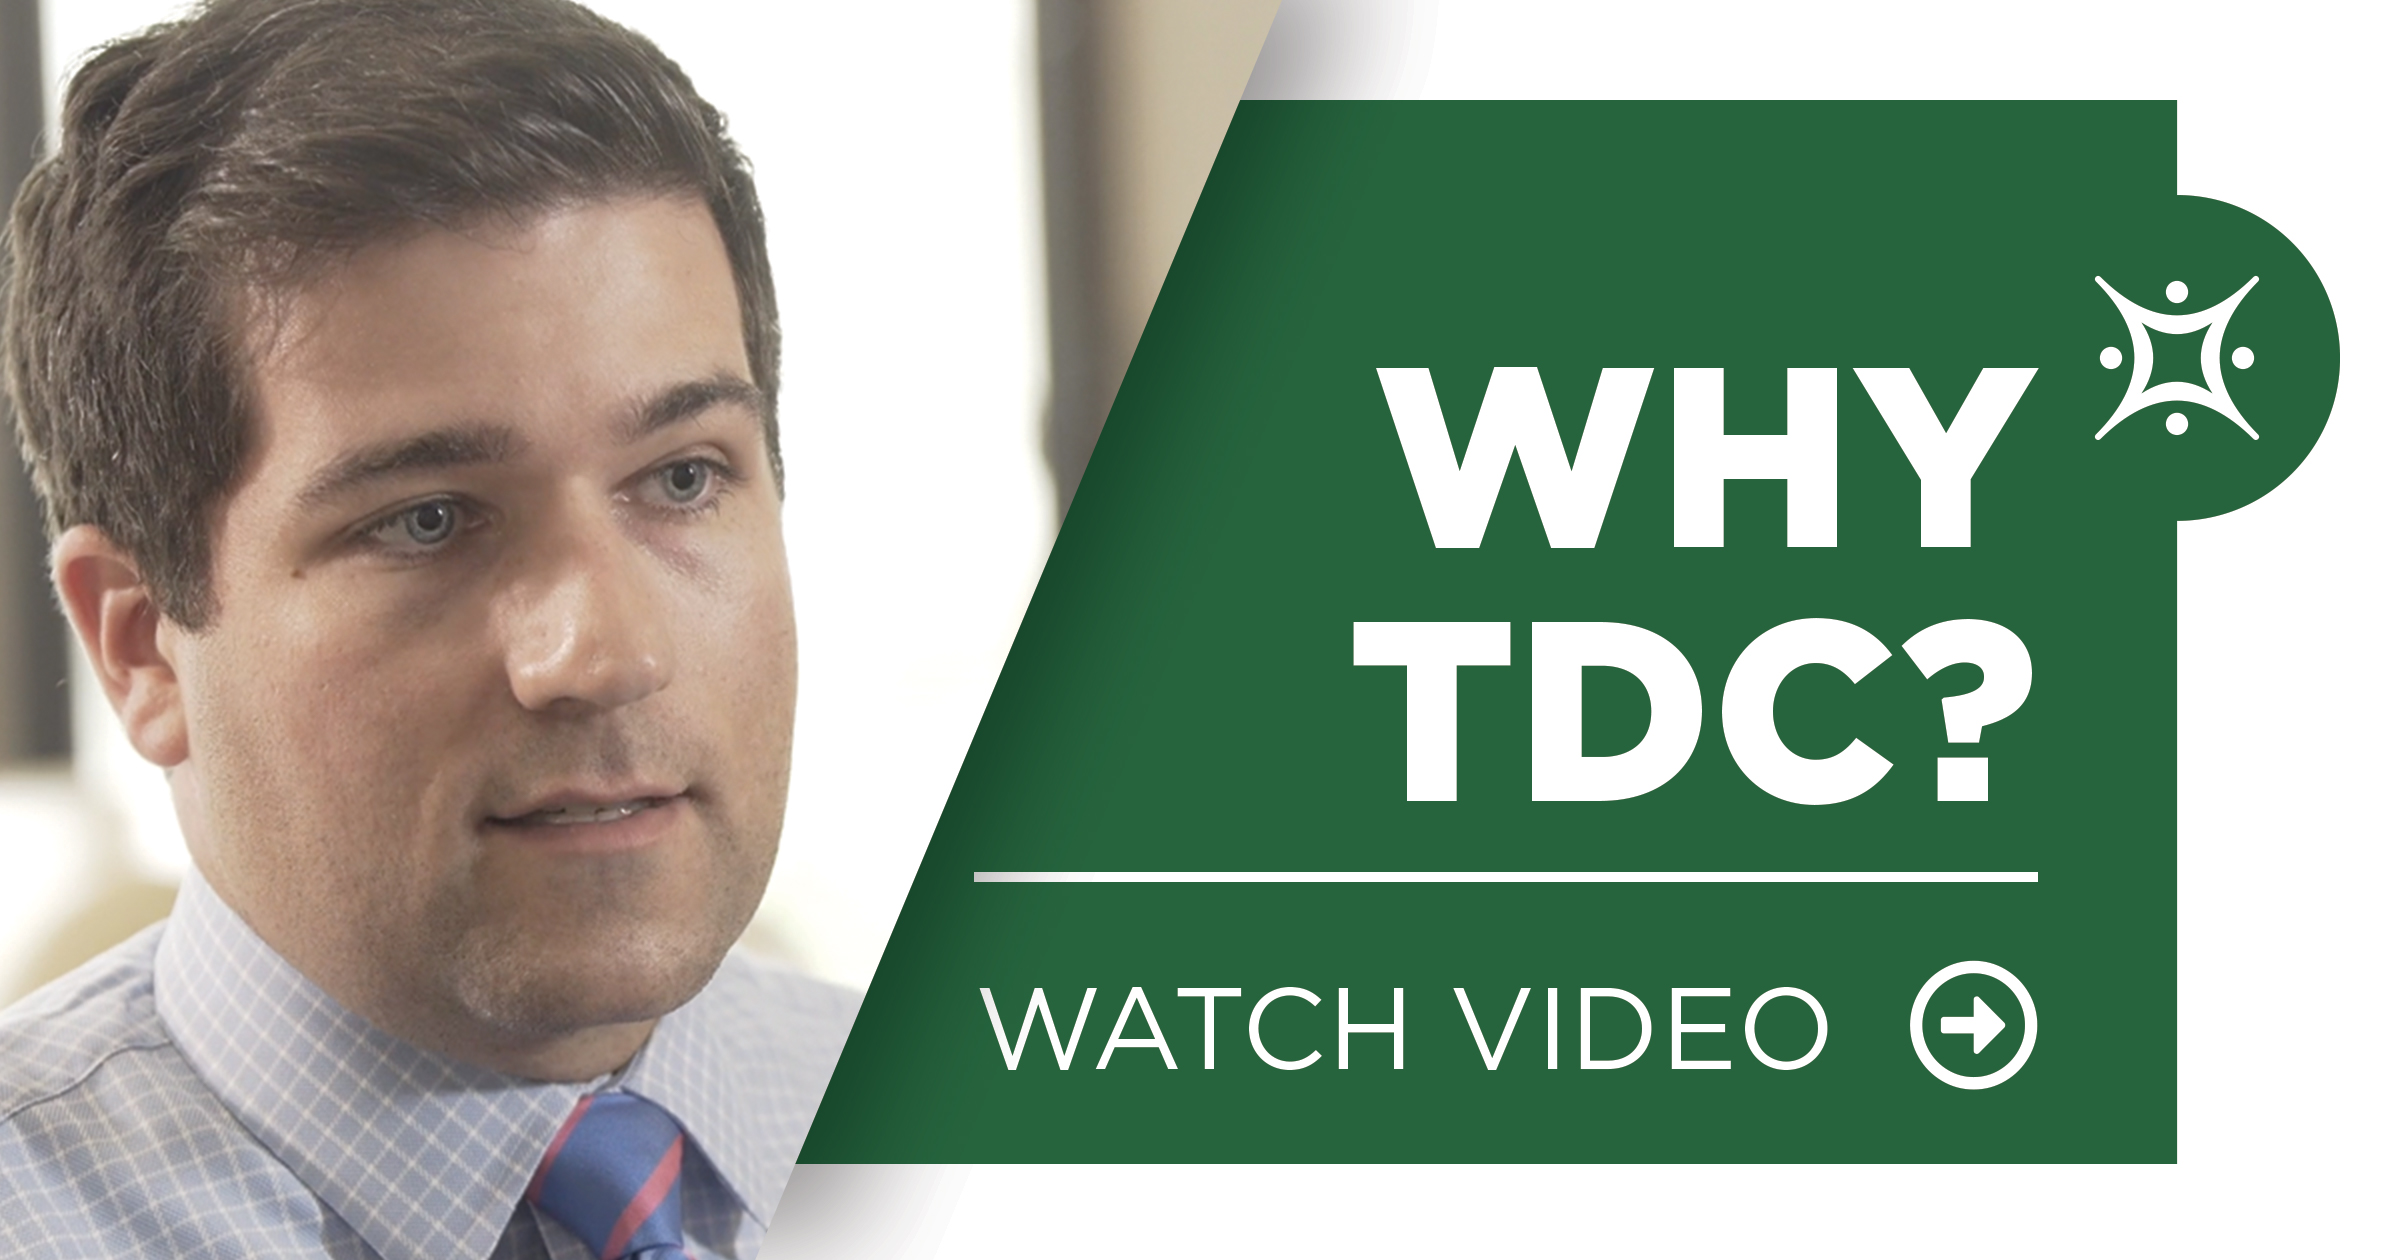 Watch Video - Why TDC Life?